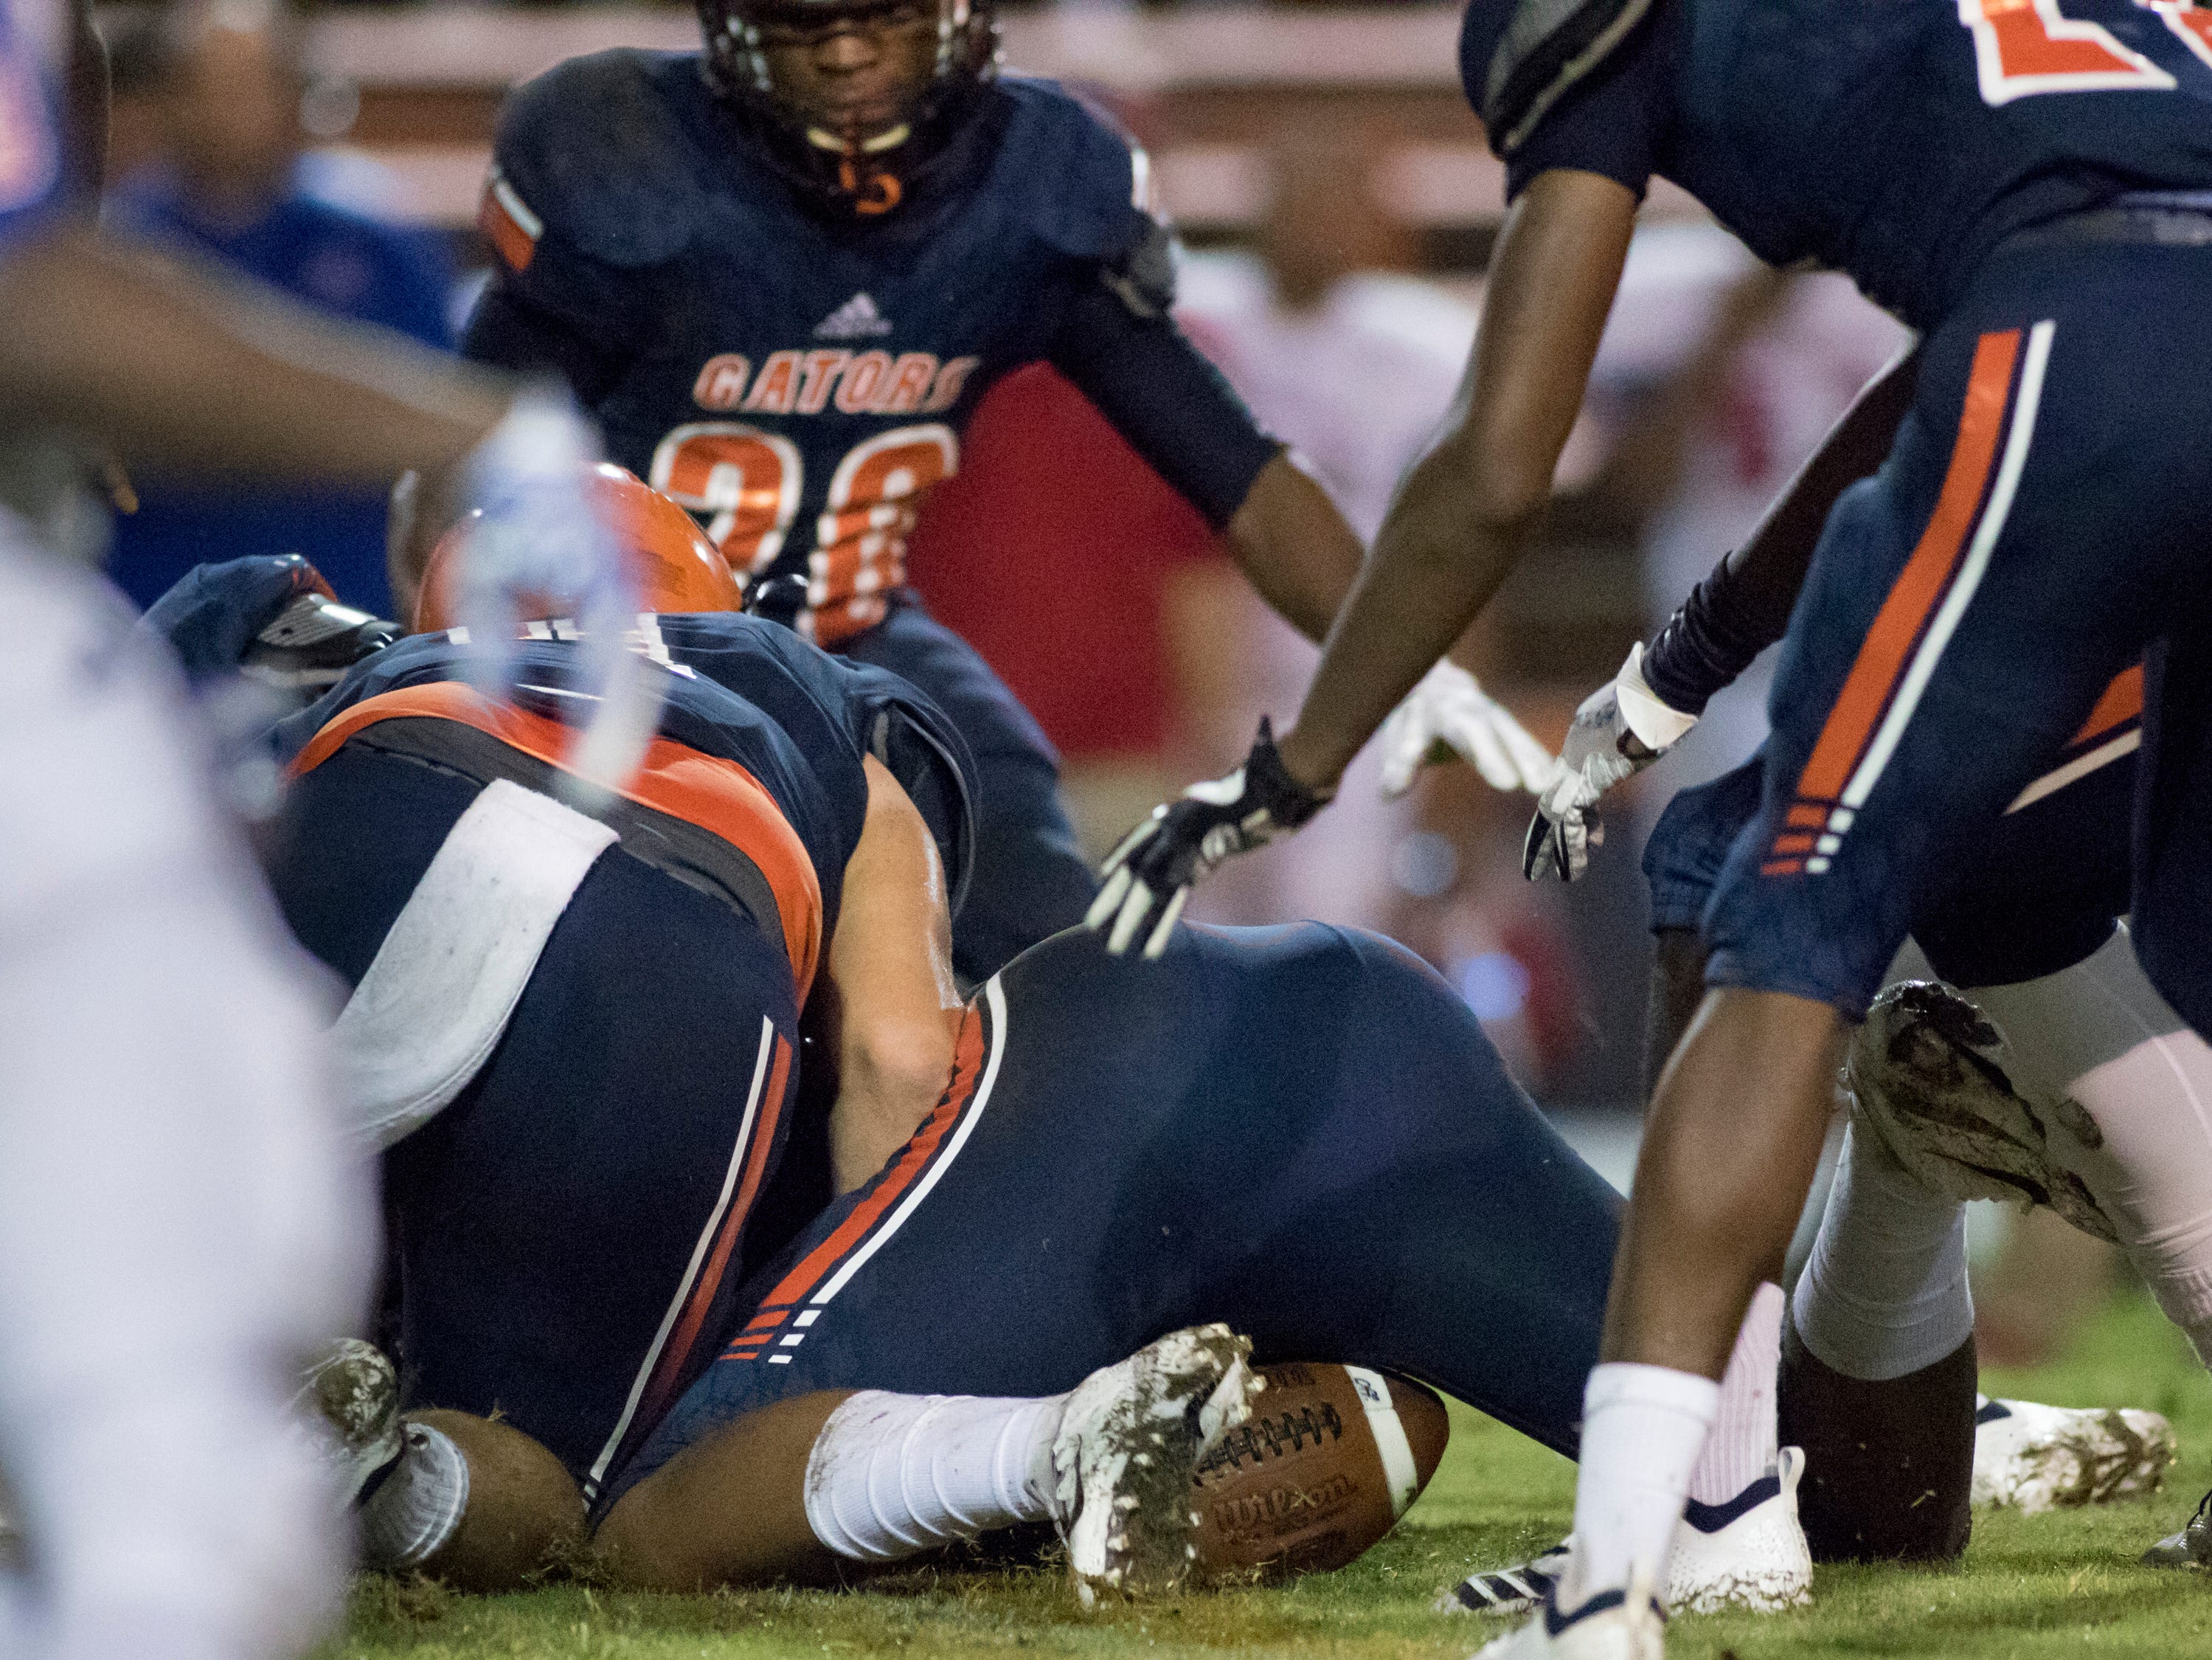 The Gators fall on an Eagles fumble during the Pine Forest vs Escambia football game at Escambia High School in Pensacola on Friday, September 28, 2018.